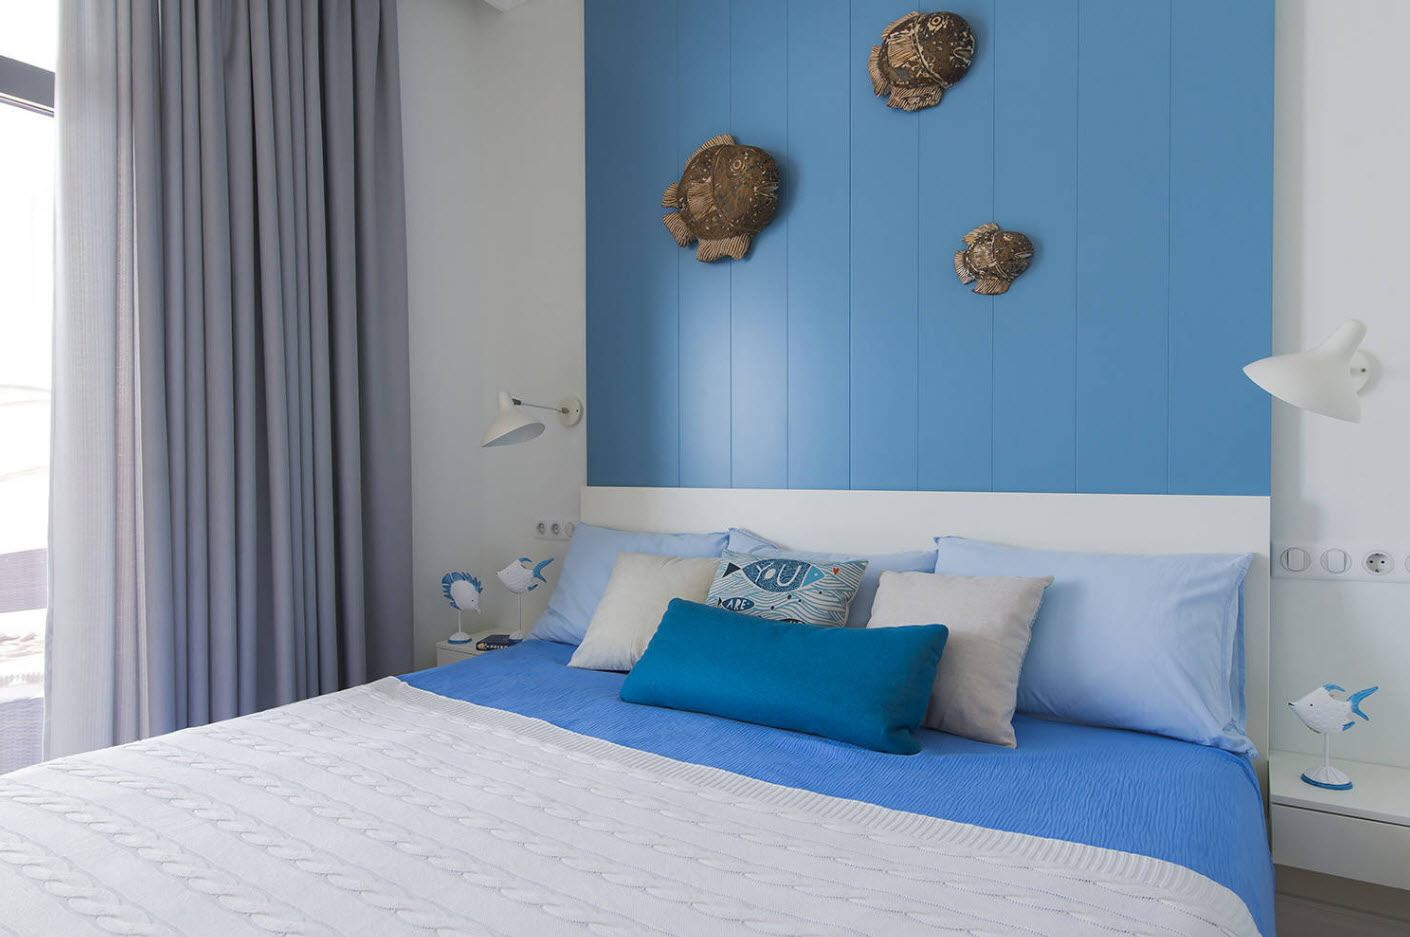 120 Square Feet Bedroom Interior Decoration Ideas. Unusual ethnic decoration of blue accent wall and gray curtains